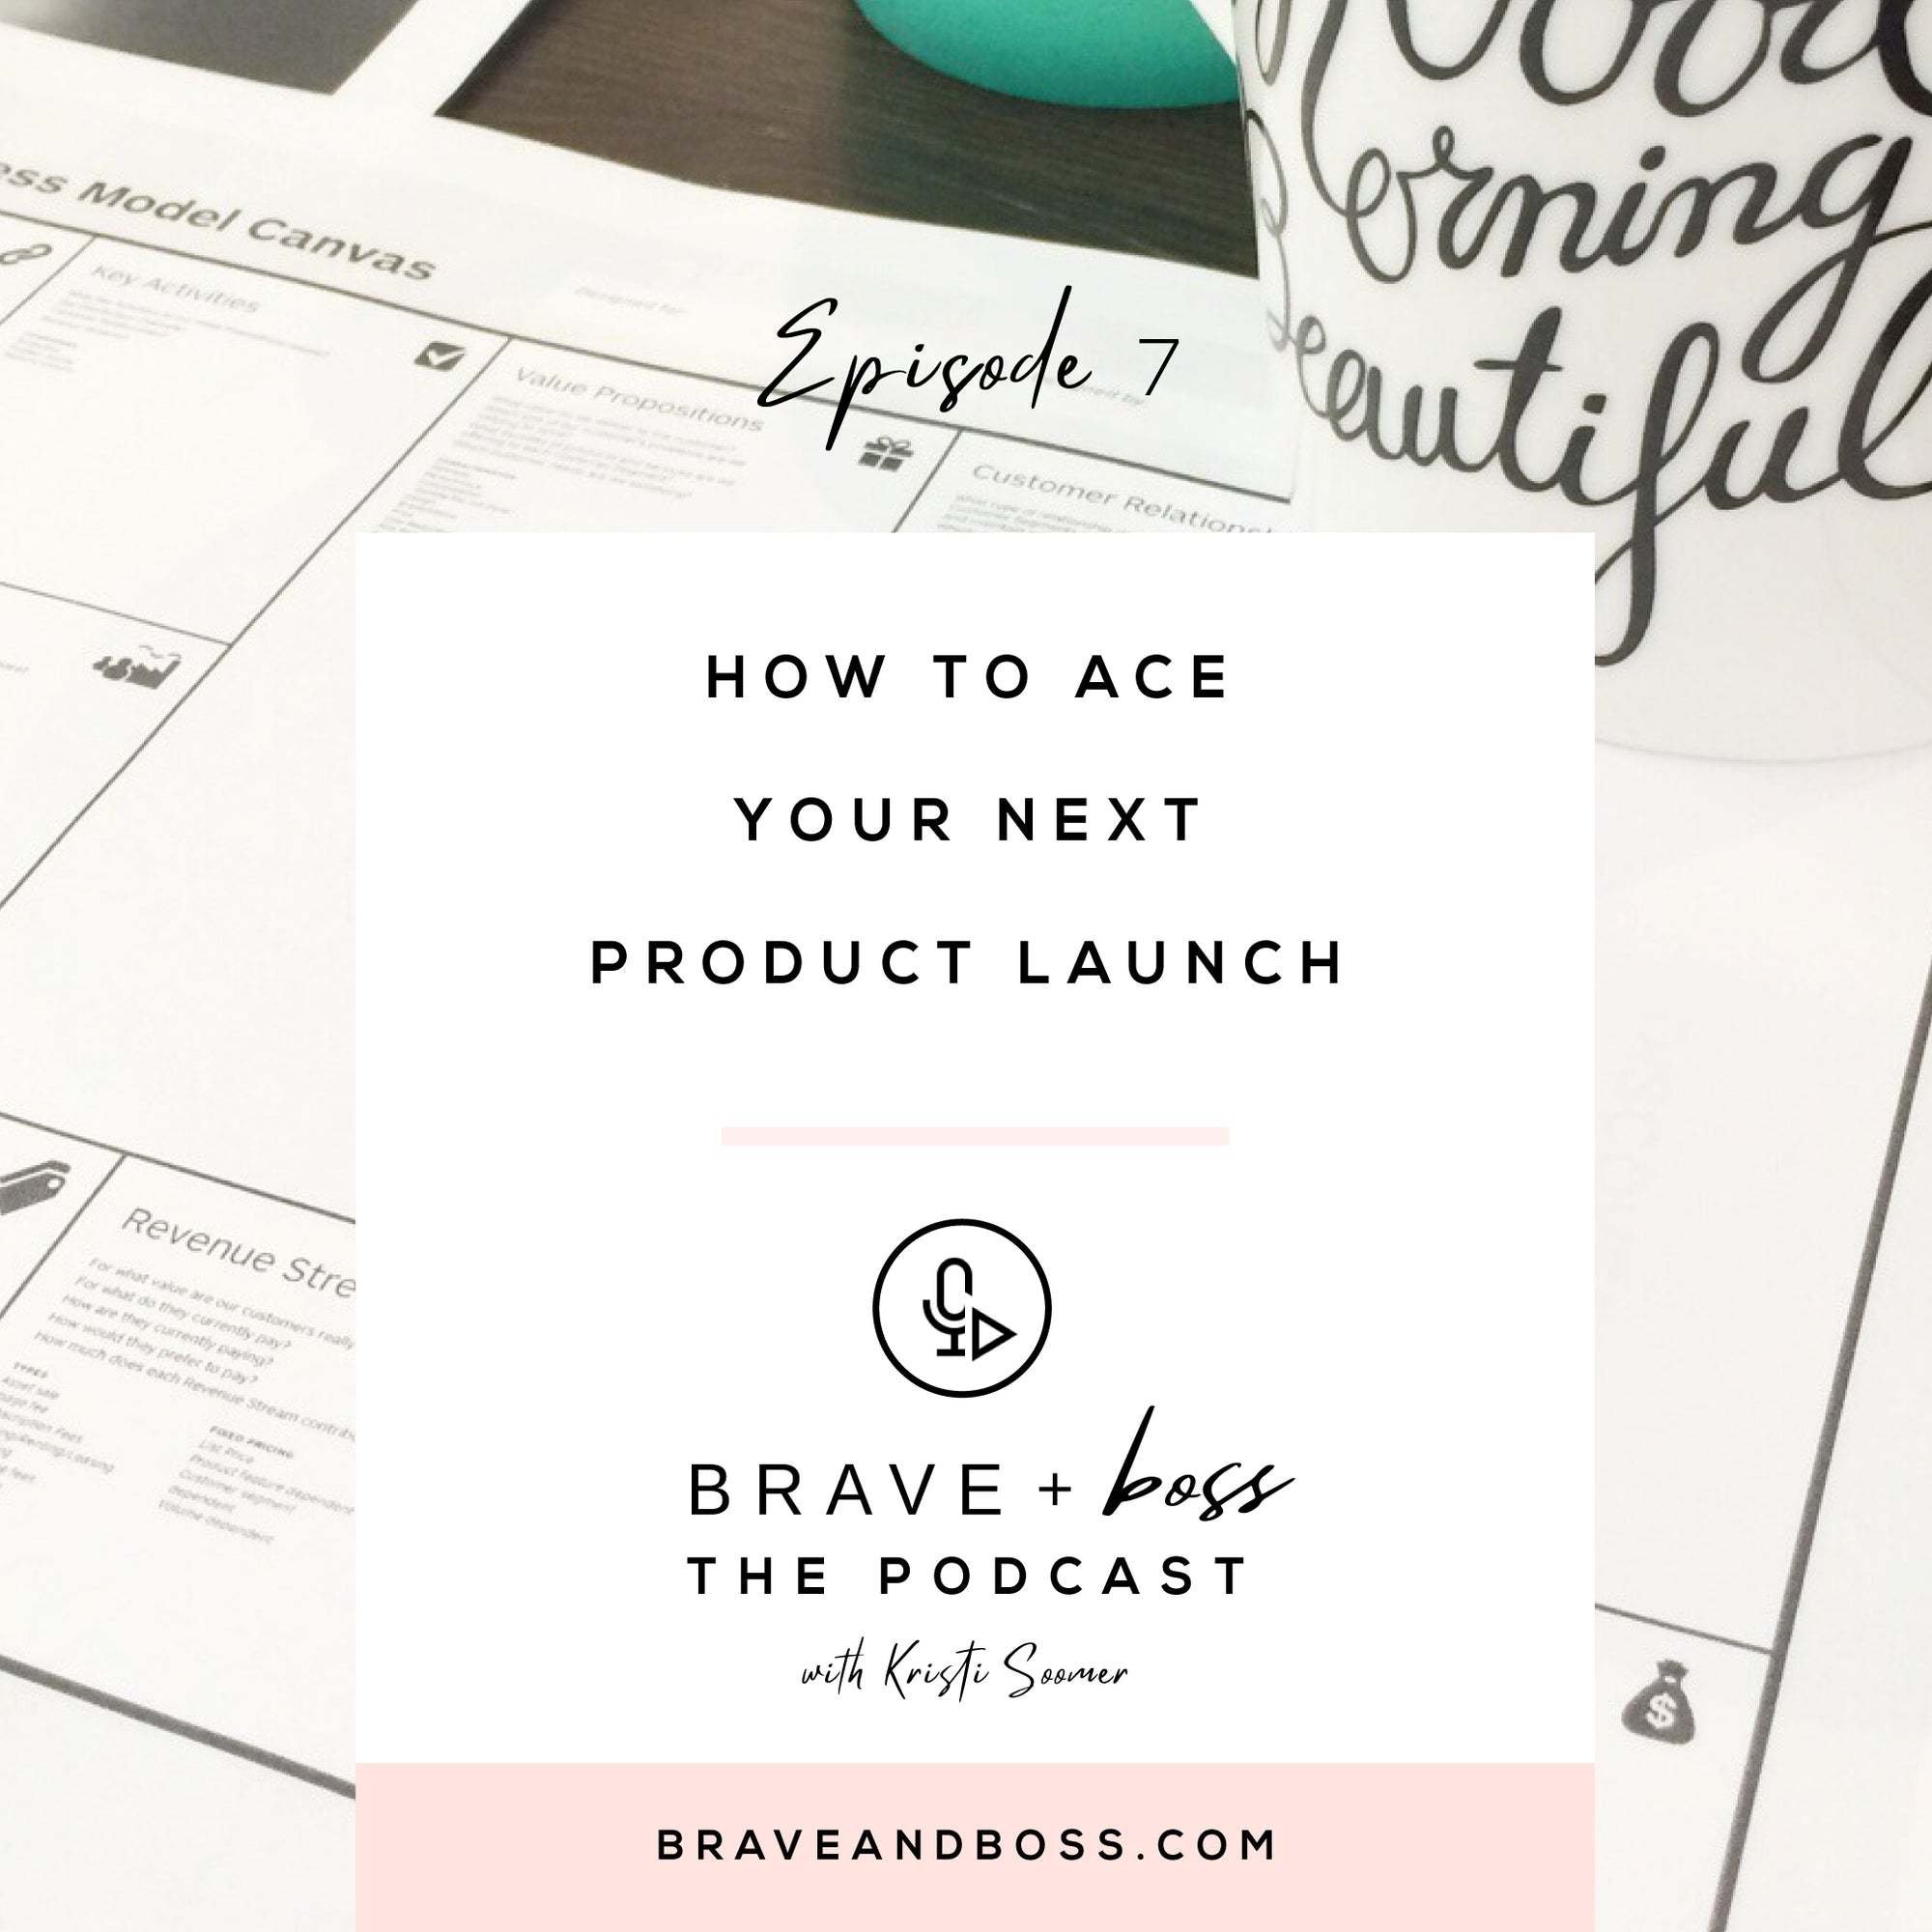 How to Ace Your Next Product Launch